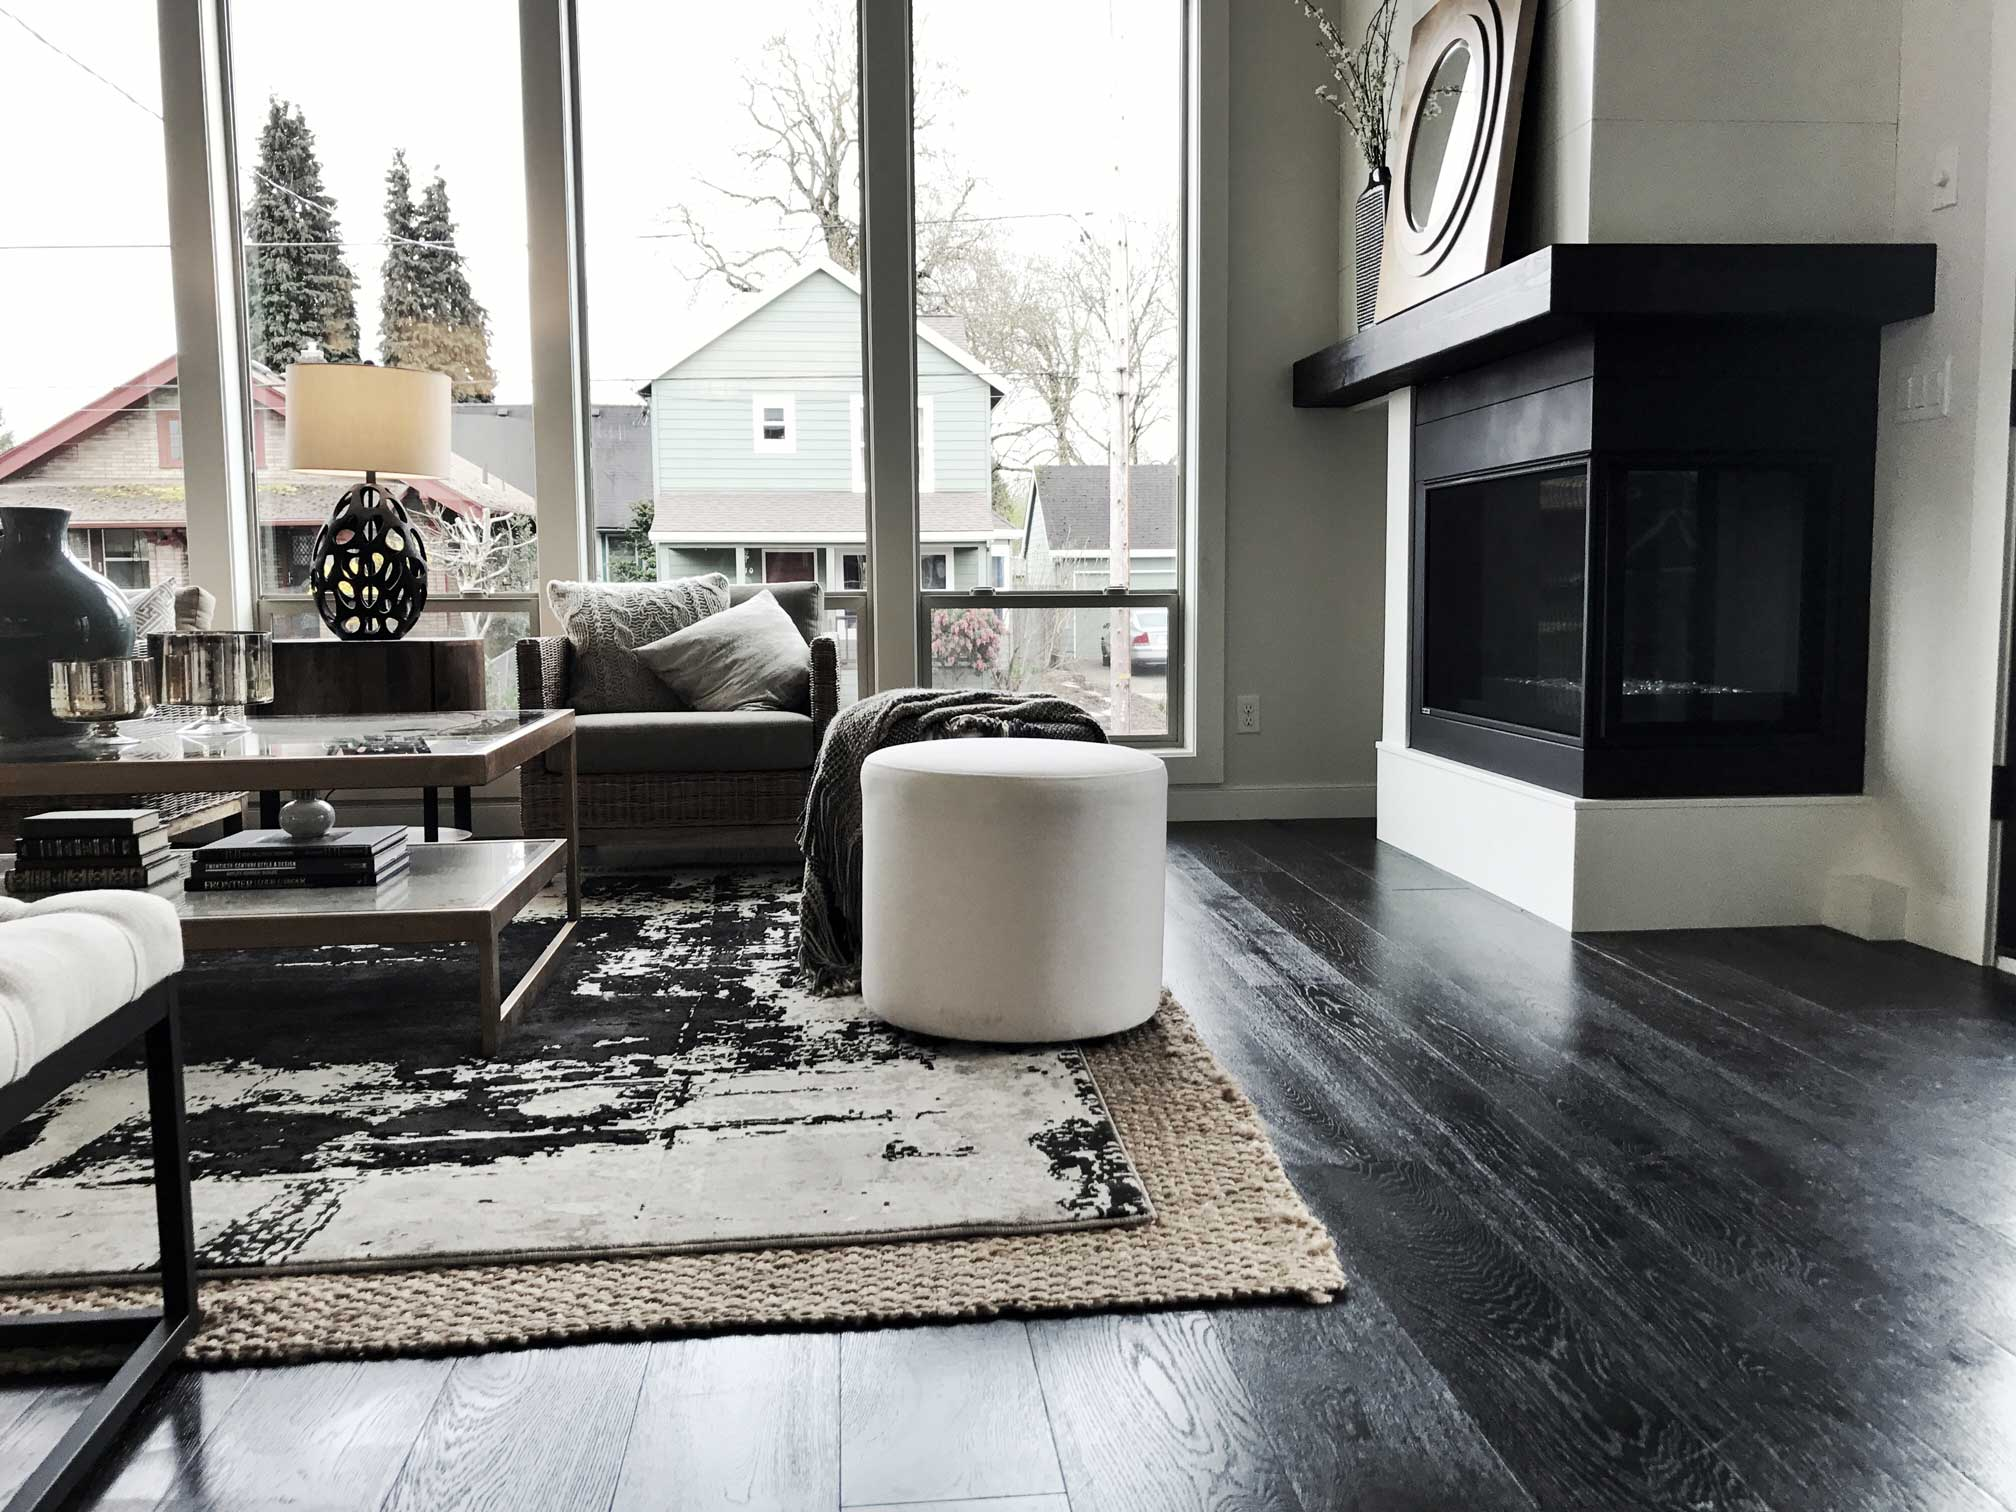 polished hardwood floors by divine hardwood & stone in portland, or